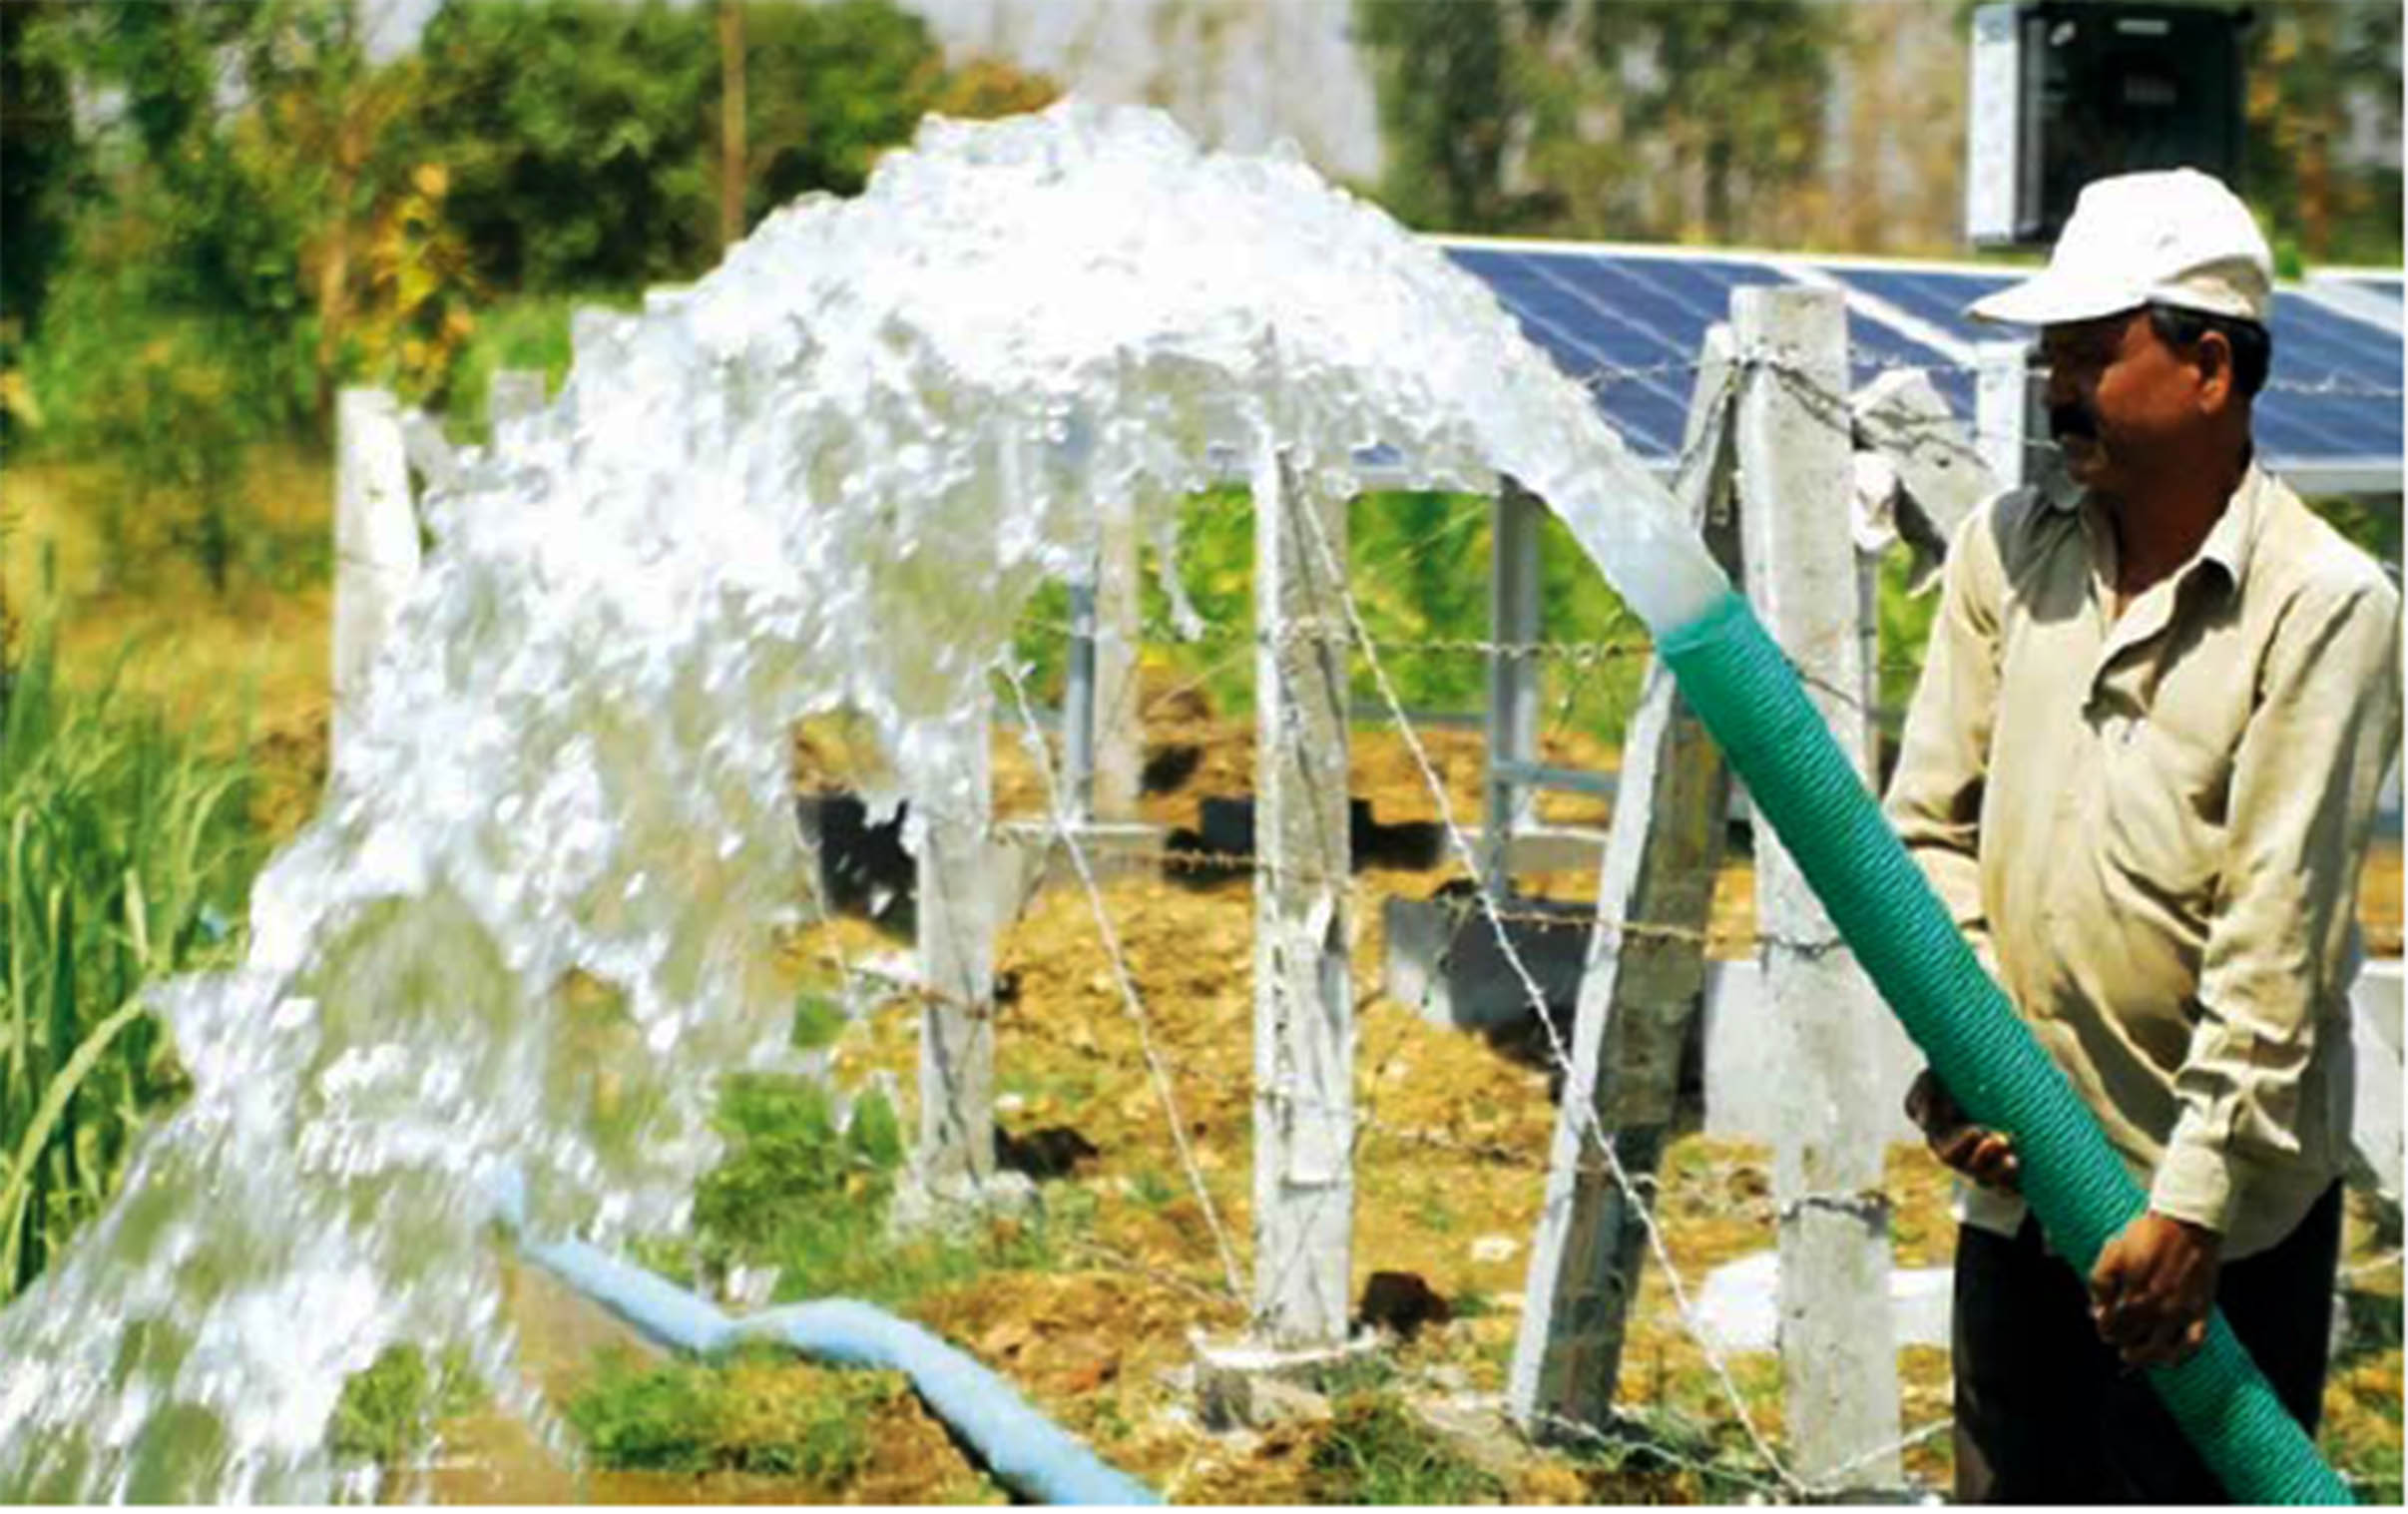 Major economic gains of the project include increase in water use which has increased the gross area under cultivation and the replacement of diesel with the sun as the source of energy leading to reduction in irrigation costs and also carbon emissions. (Image: AKRSP)